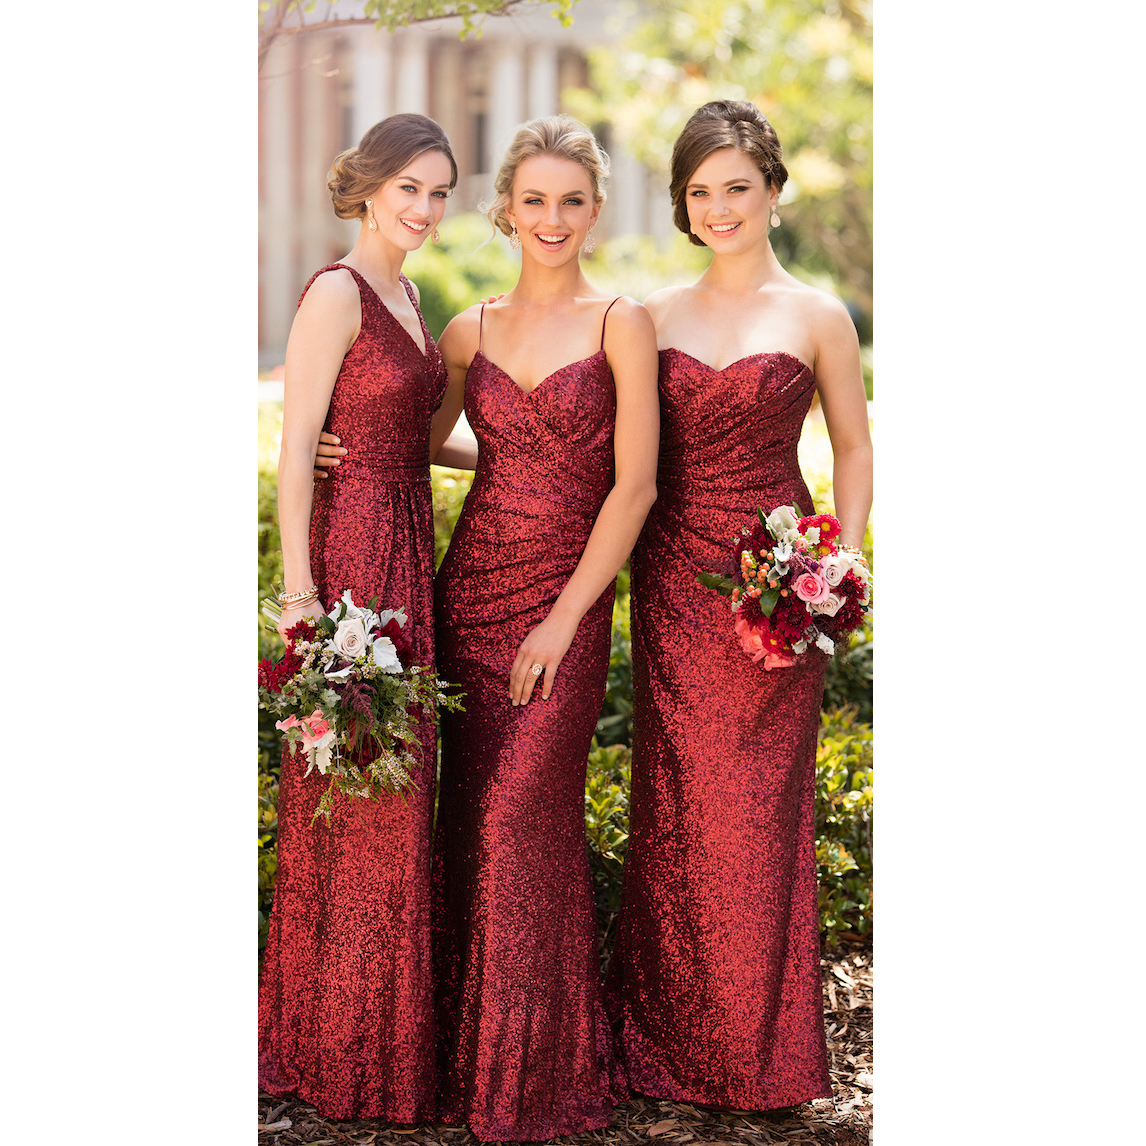 a347a7bd7cc9 Burgundy Bridesmaid Dress Long Sparkly Sexy Neck Design Optional Simple Party  Gowns Floor Length Wedding Guest